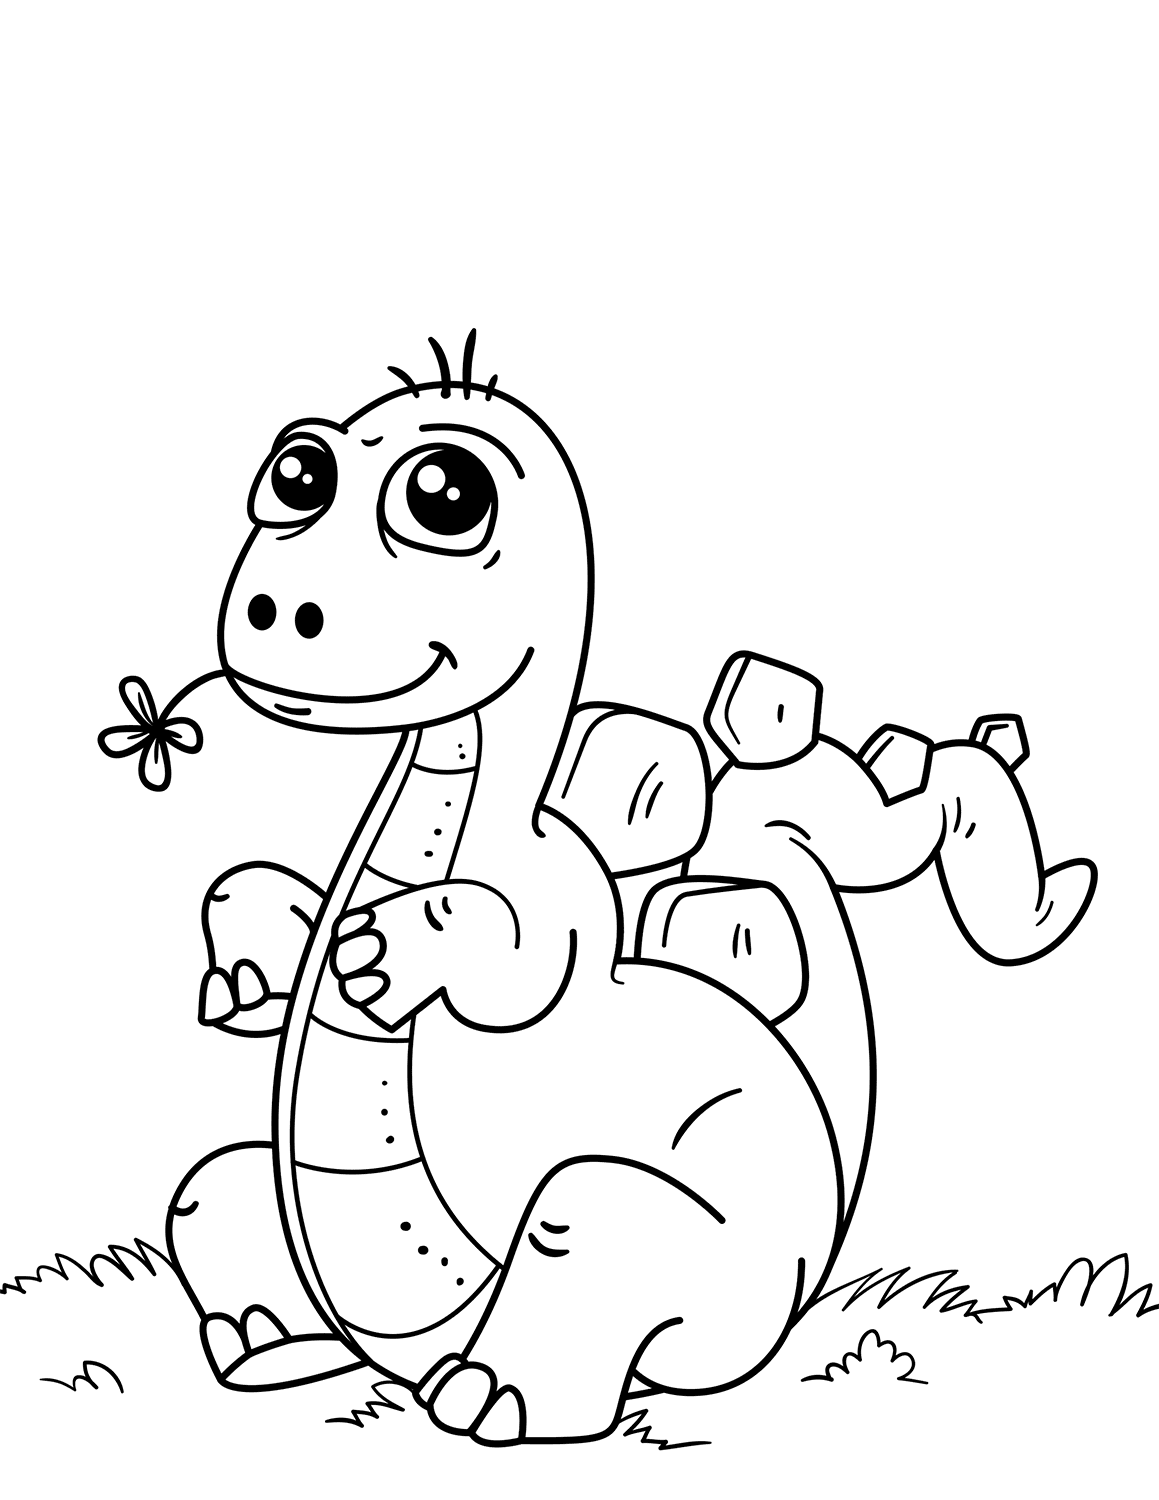 free printable coloring pages of dinosaurs t rex dinosaur coloring pages at getcoloringscom free printable coloring pages of free dinosaurs